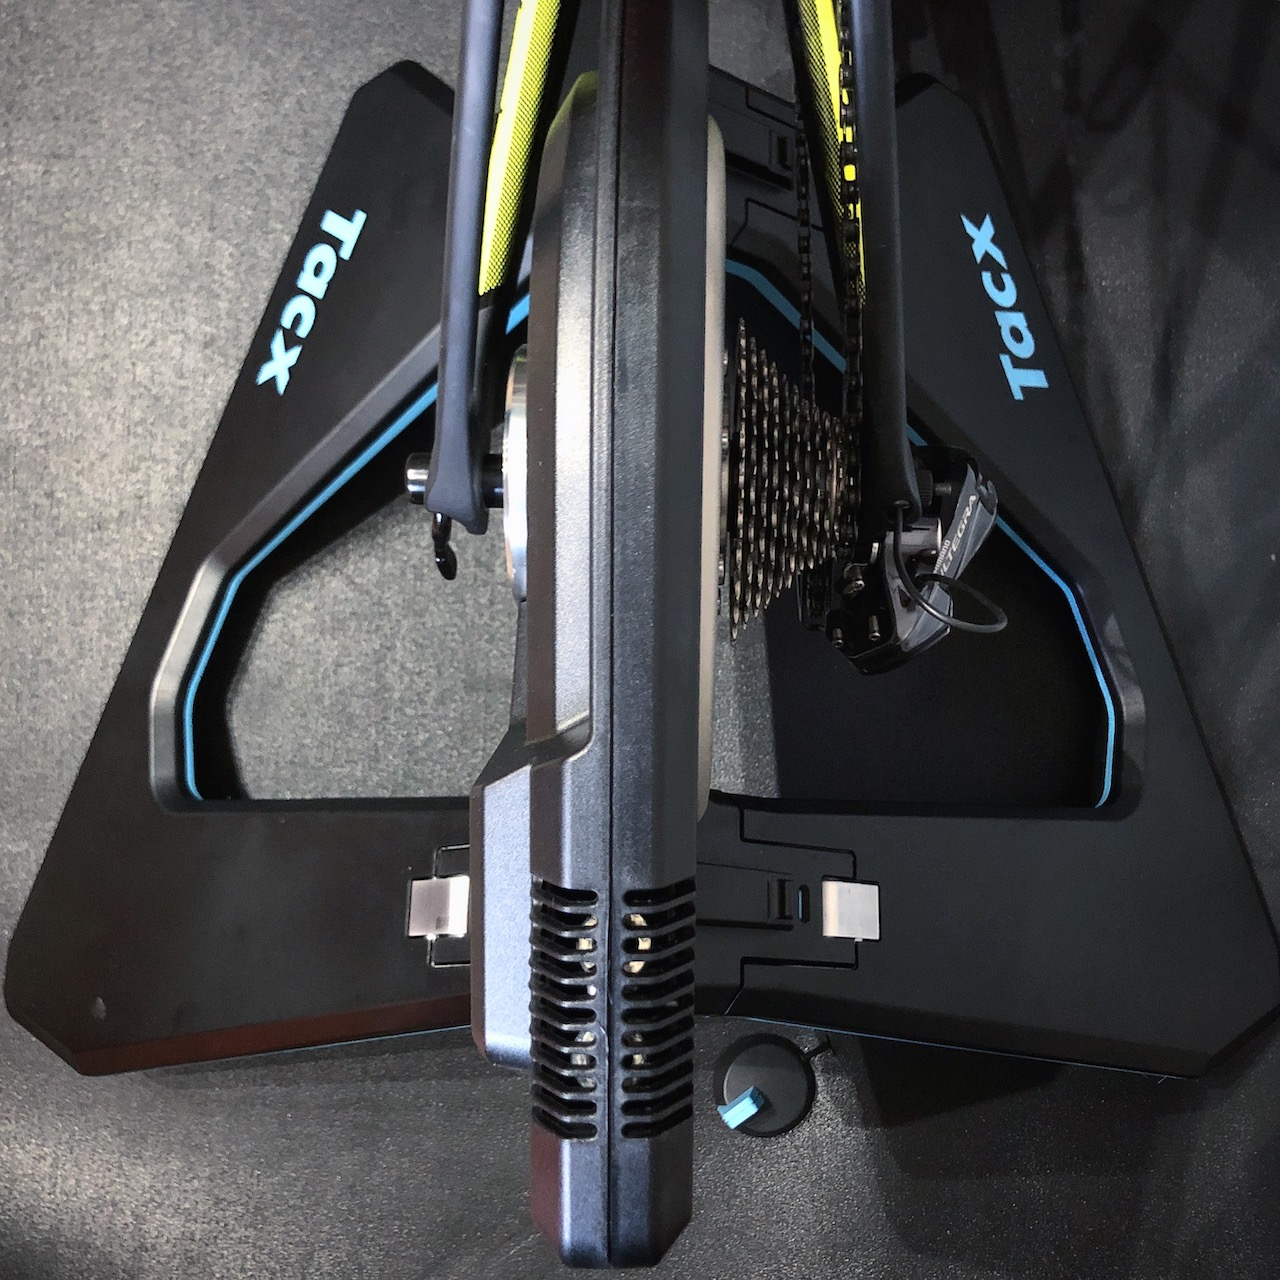 TitaniumGeek IMG 5784 Tacx NEO 2 Review | ZWIFT GEAR TEST Cycling Gear Reviews Smart Trainers Zwift  Zwift tacx neo 2 cycling   Image of IMG 5784